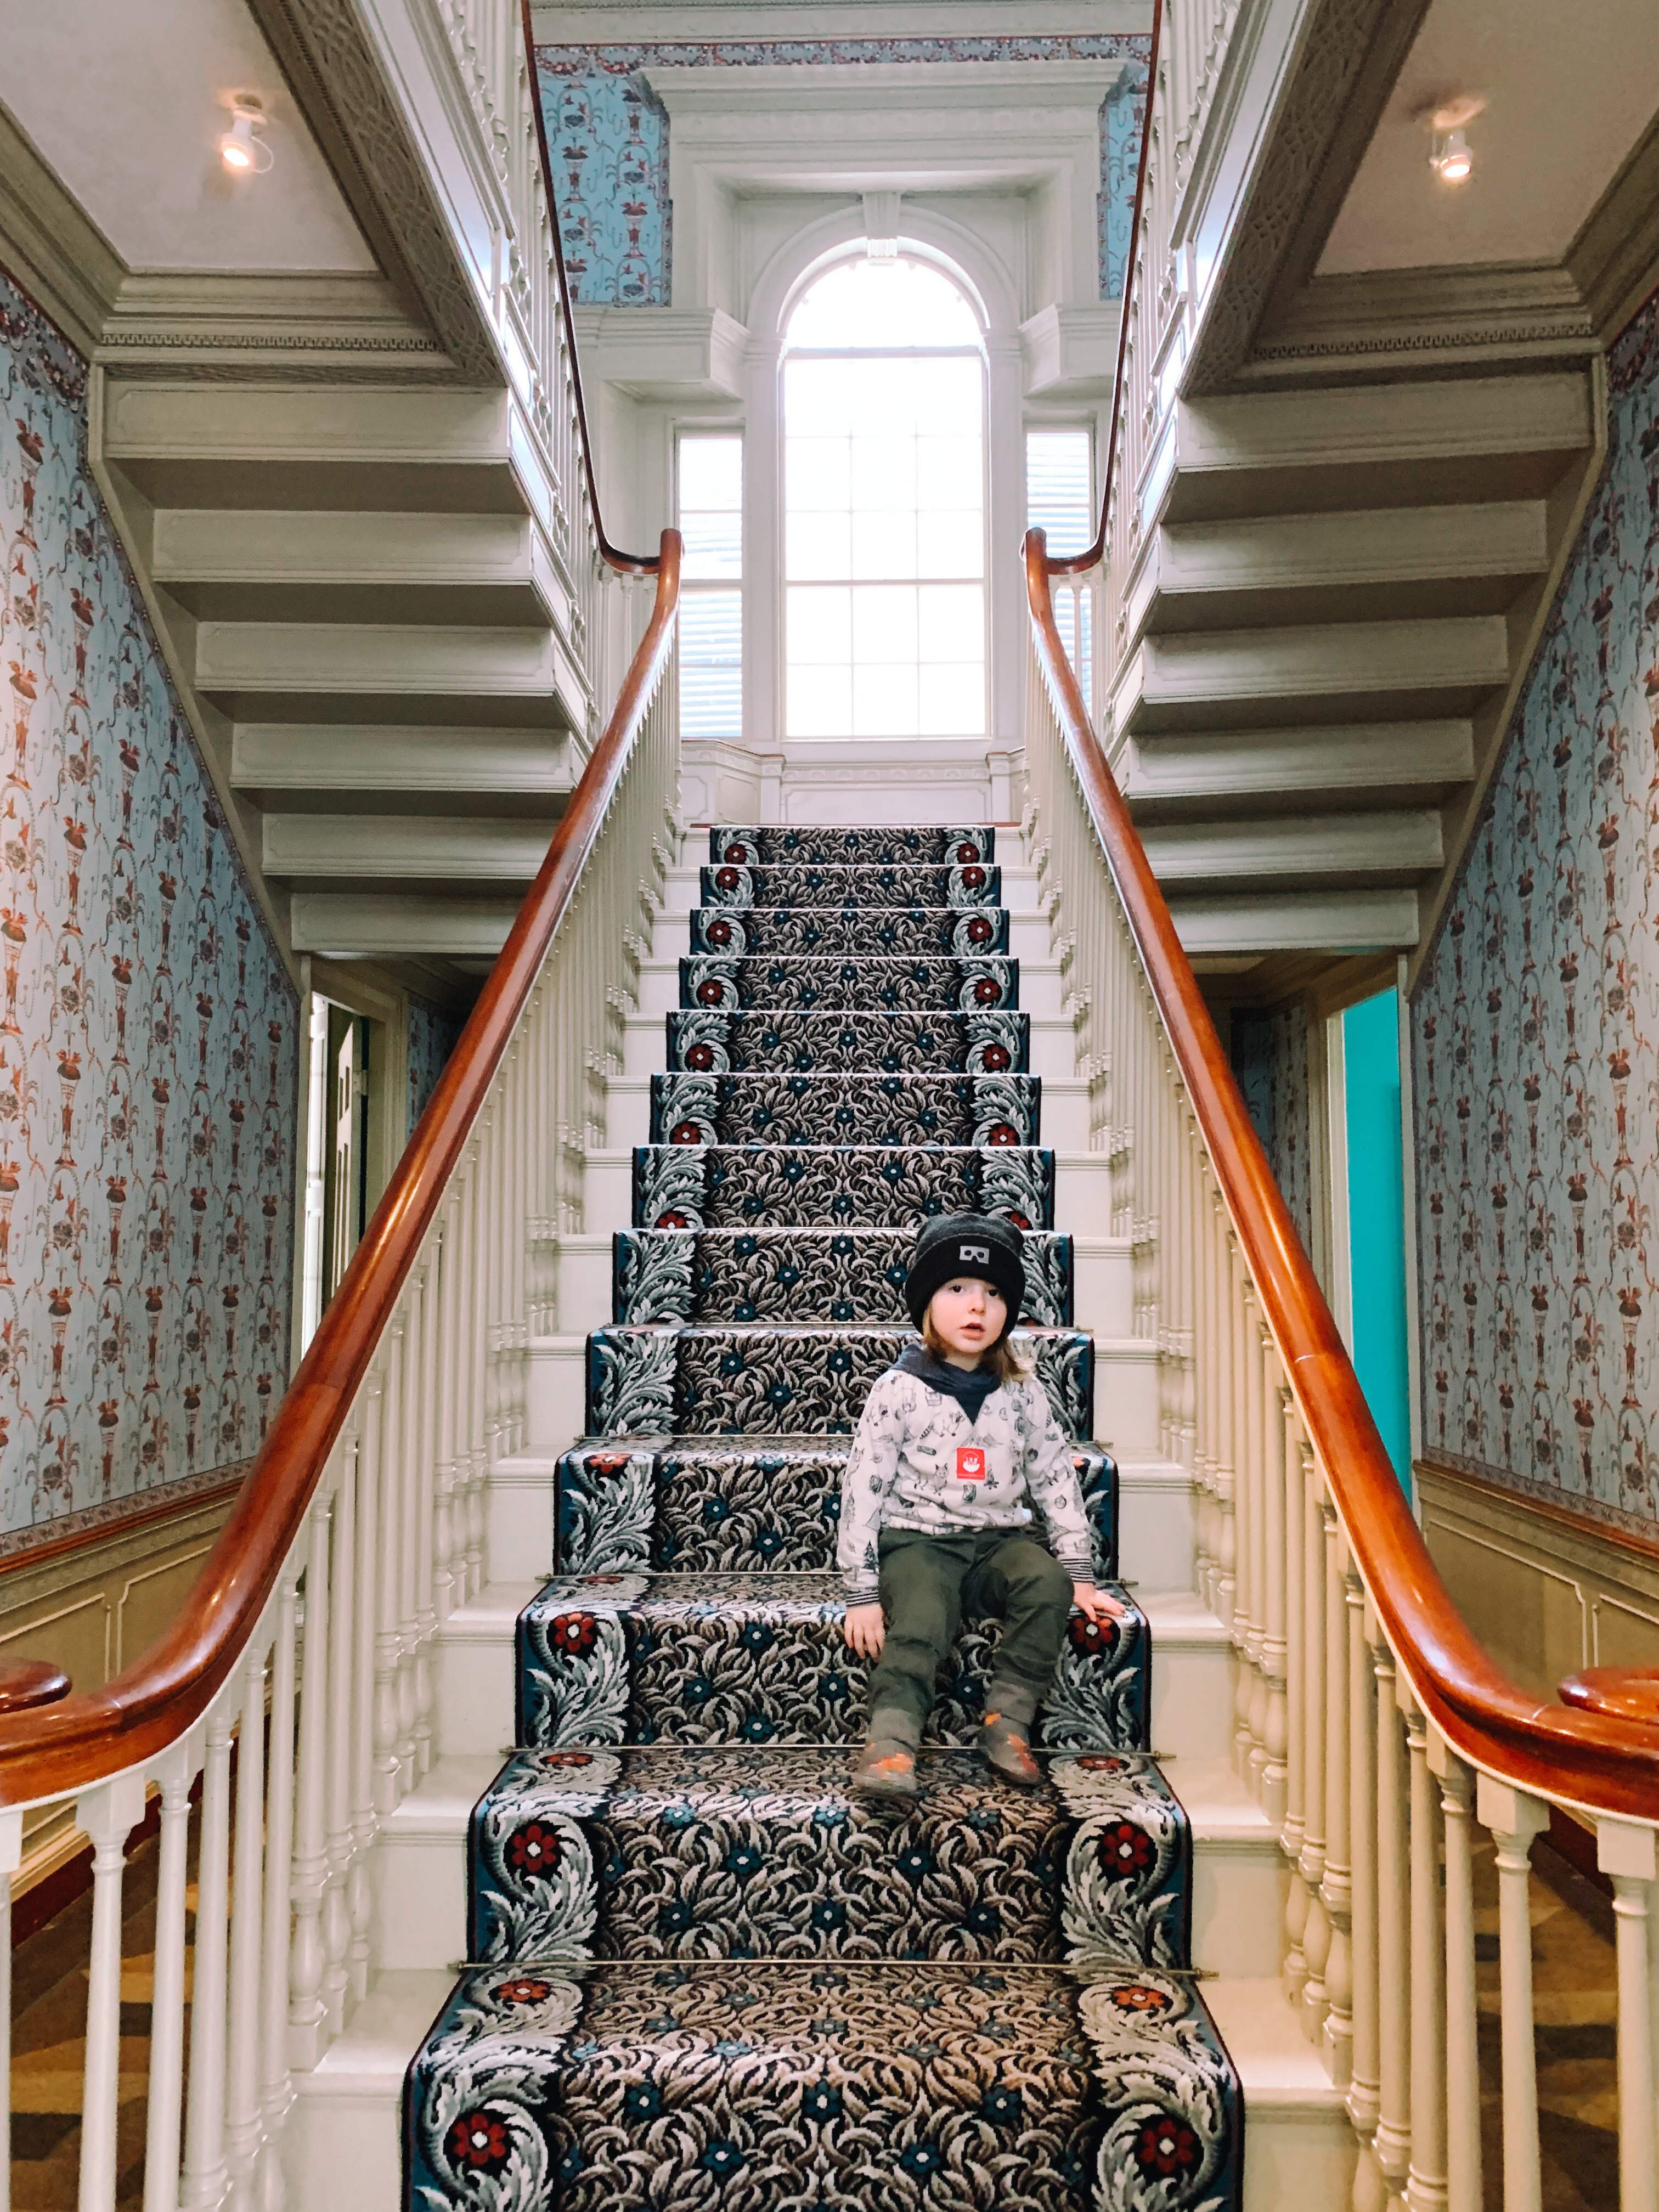 A 3 year old wearing a black beanie sitting on an elaborately carpeted staircase.